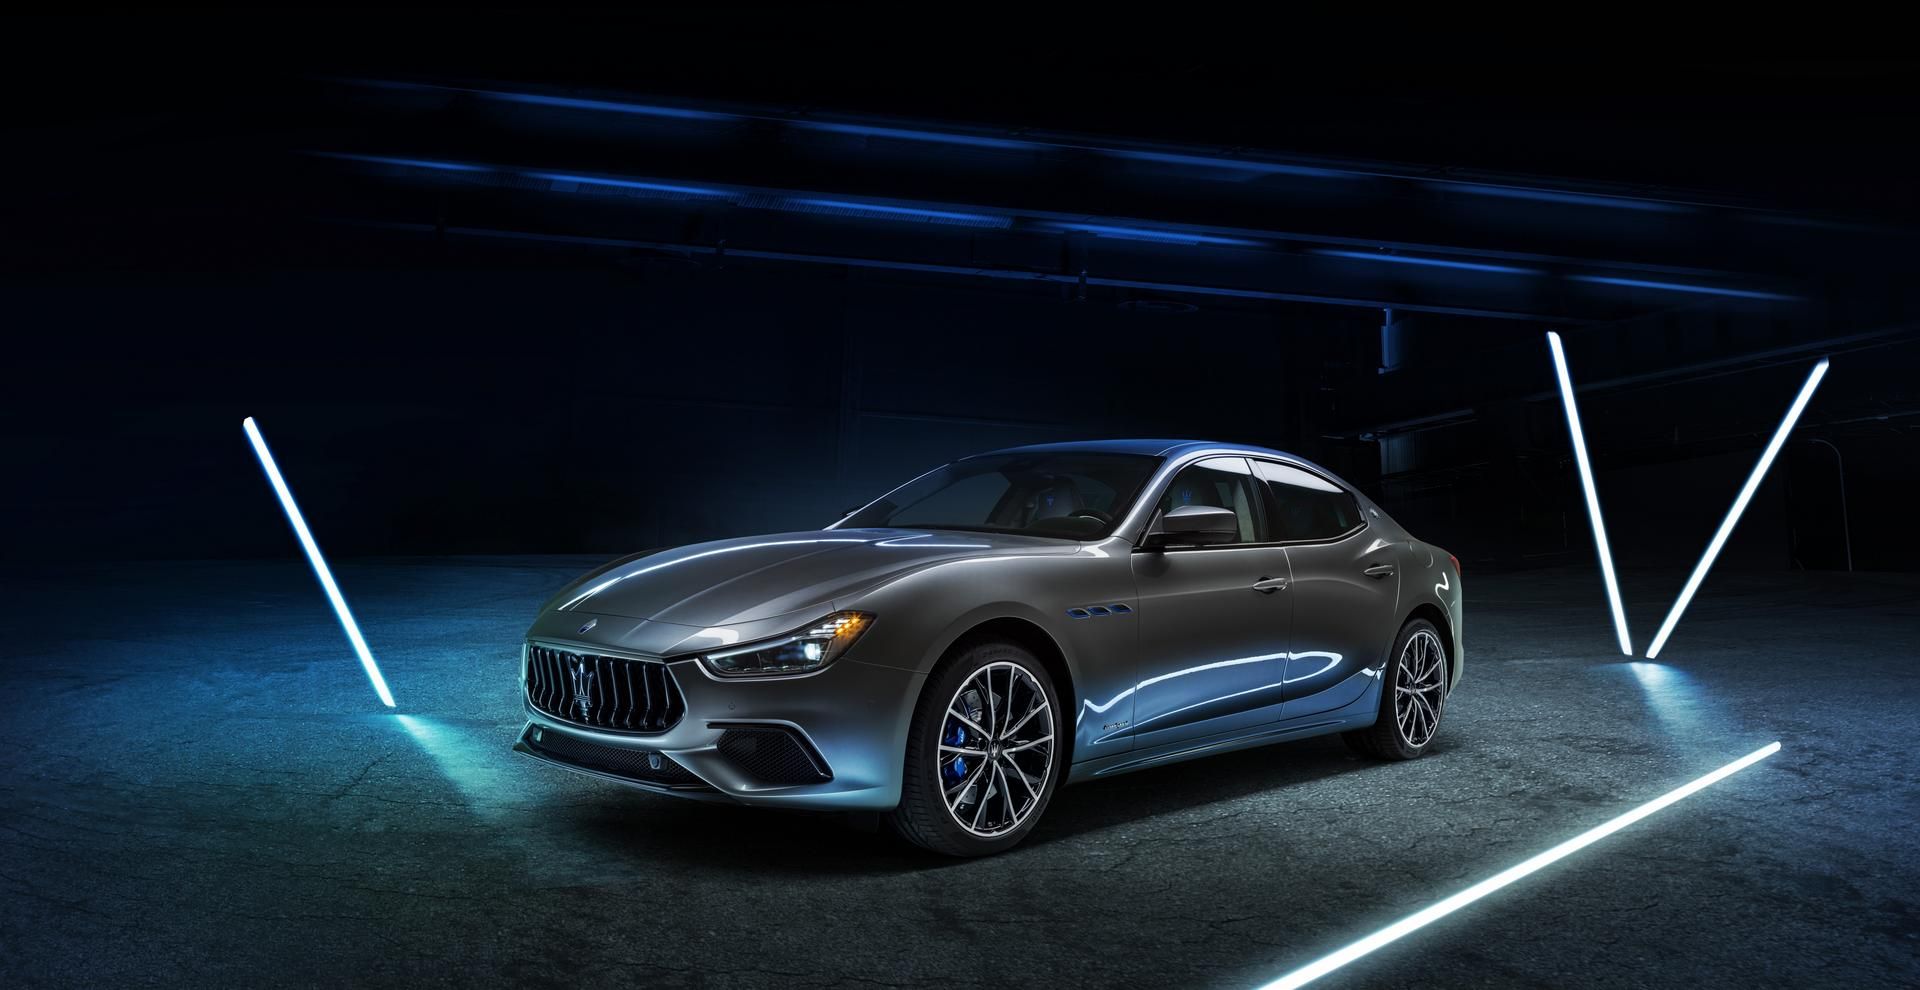 2021 Maserati Ghibli Hybrid: Brand's First Electrified Model